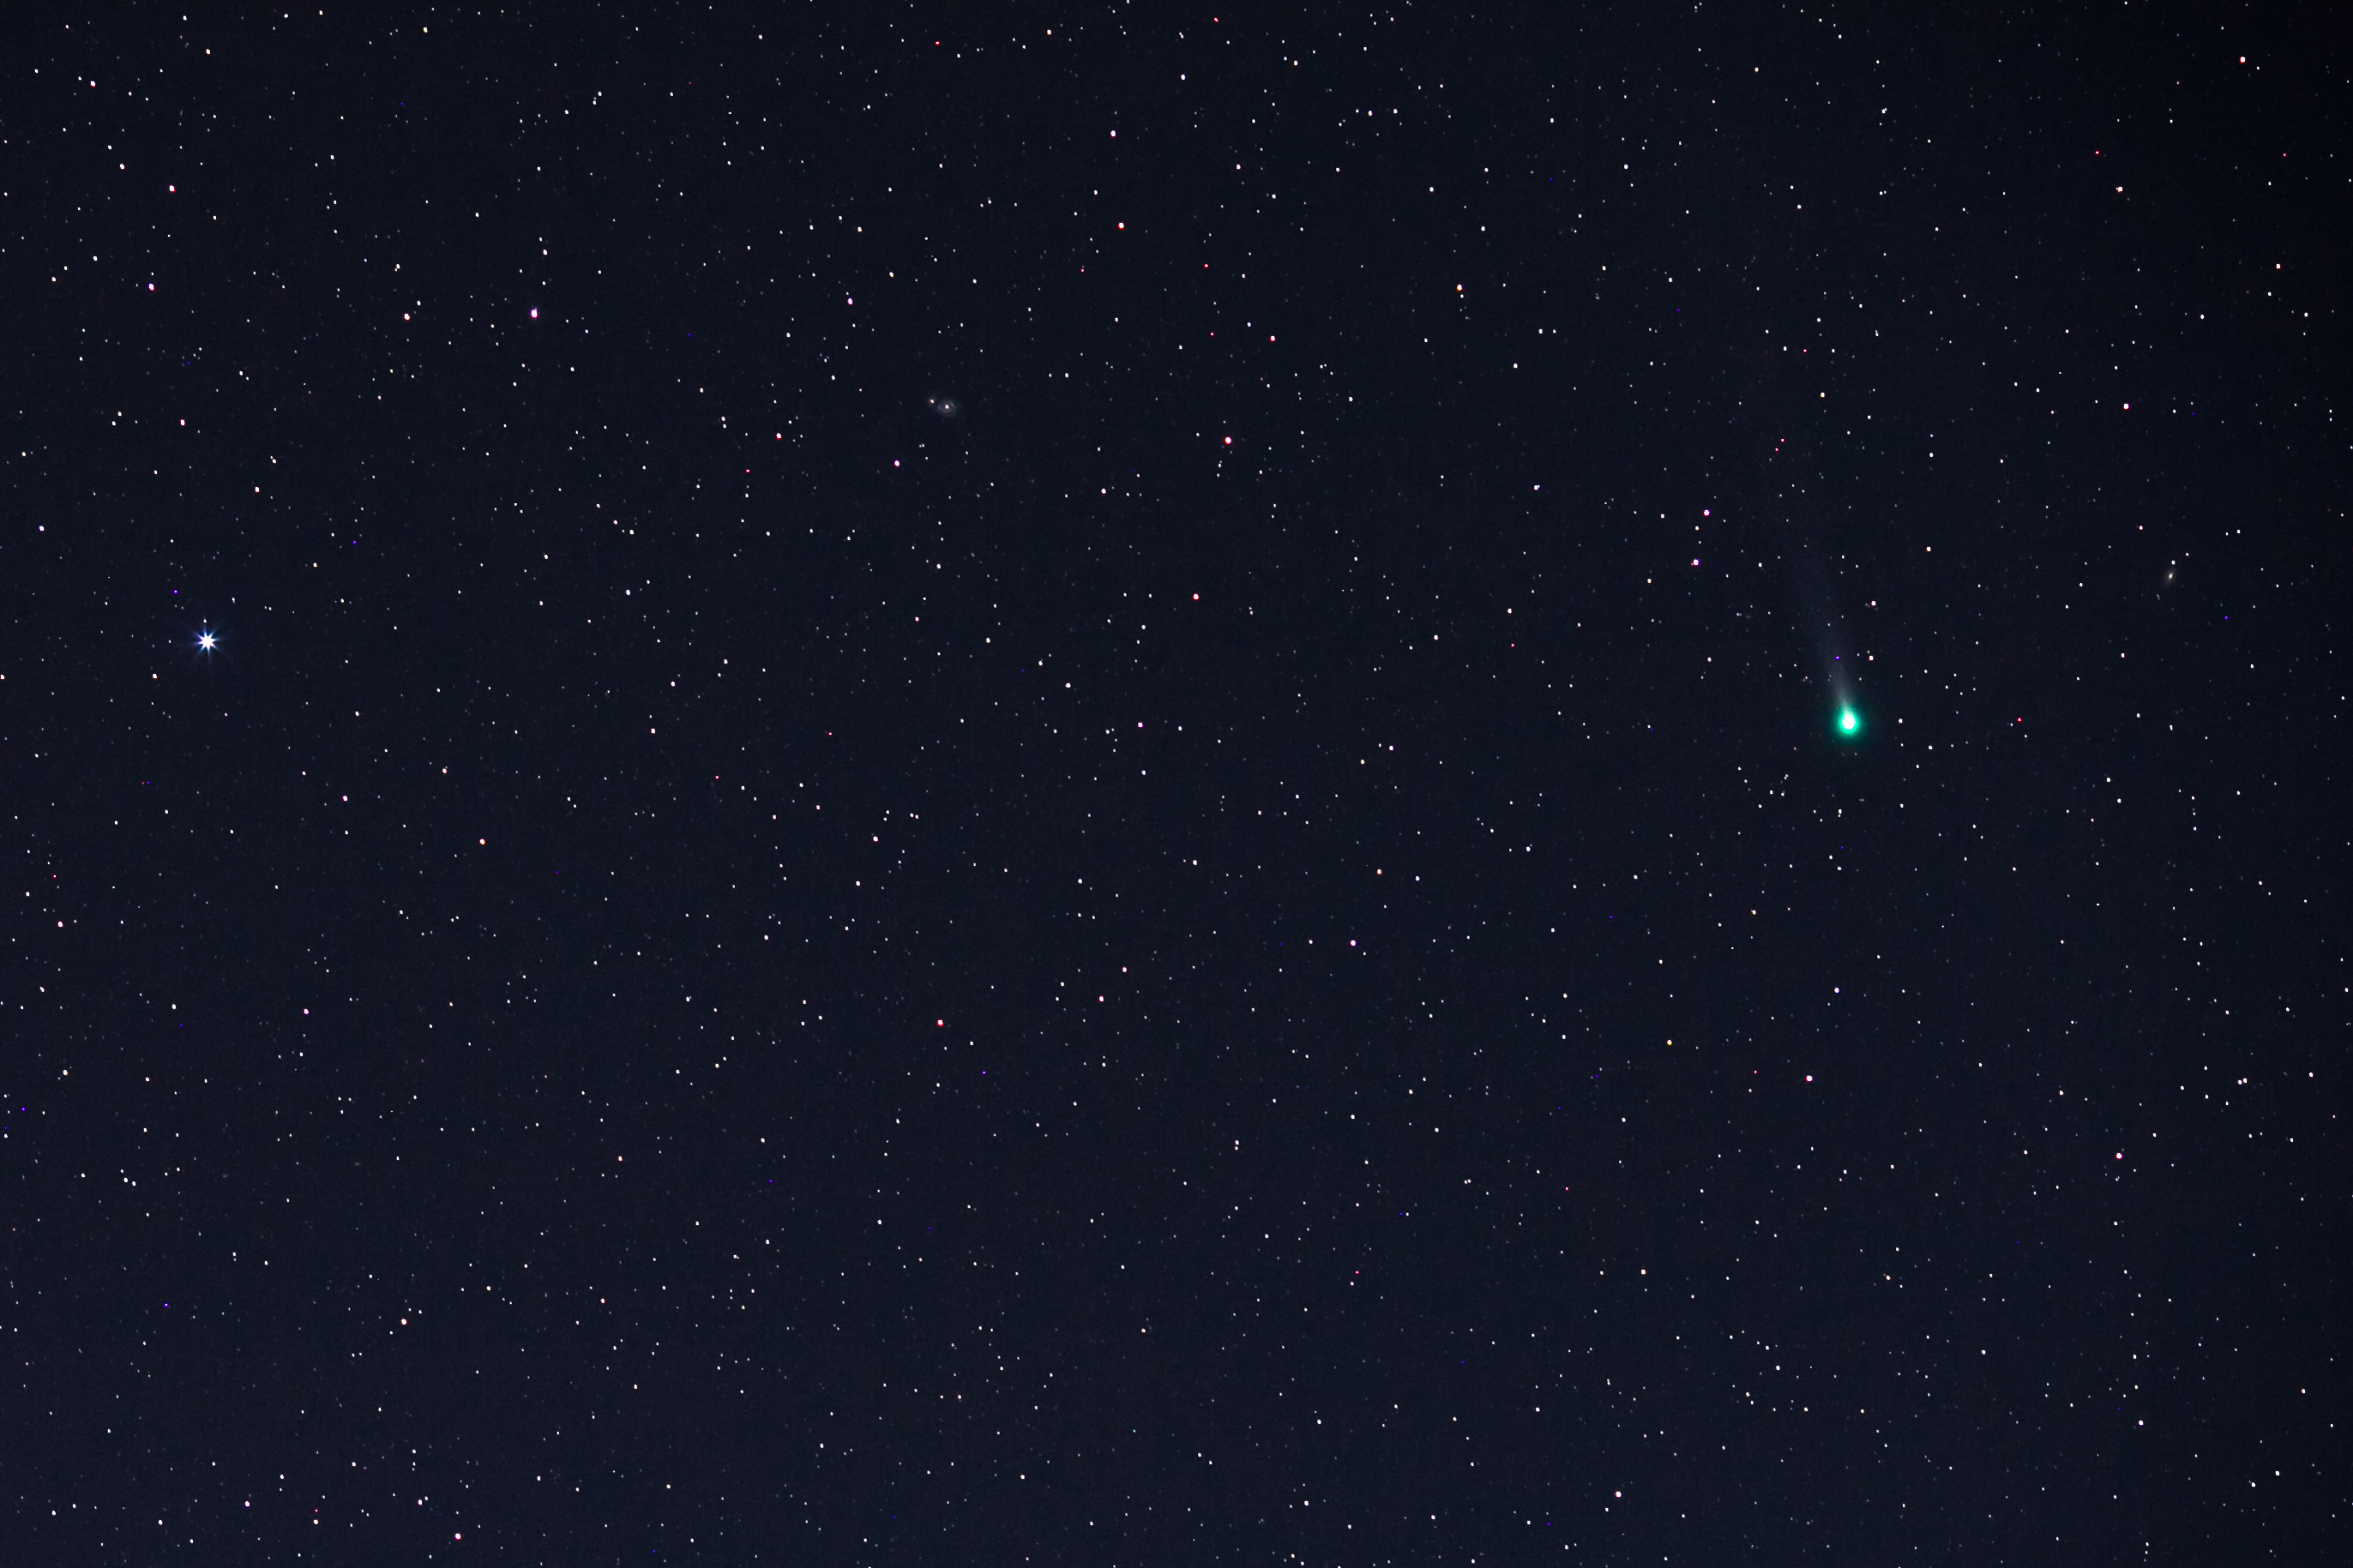 Comet Lovejoy and Messier 51 by Tyler S. Leavitt